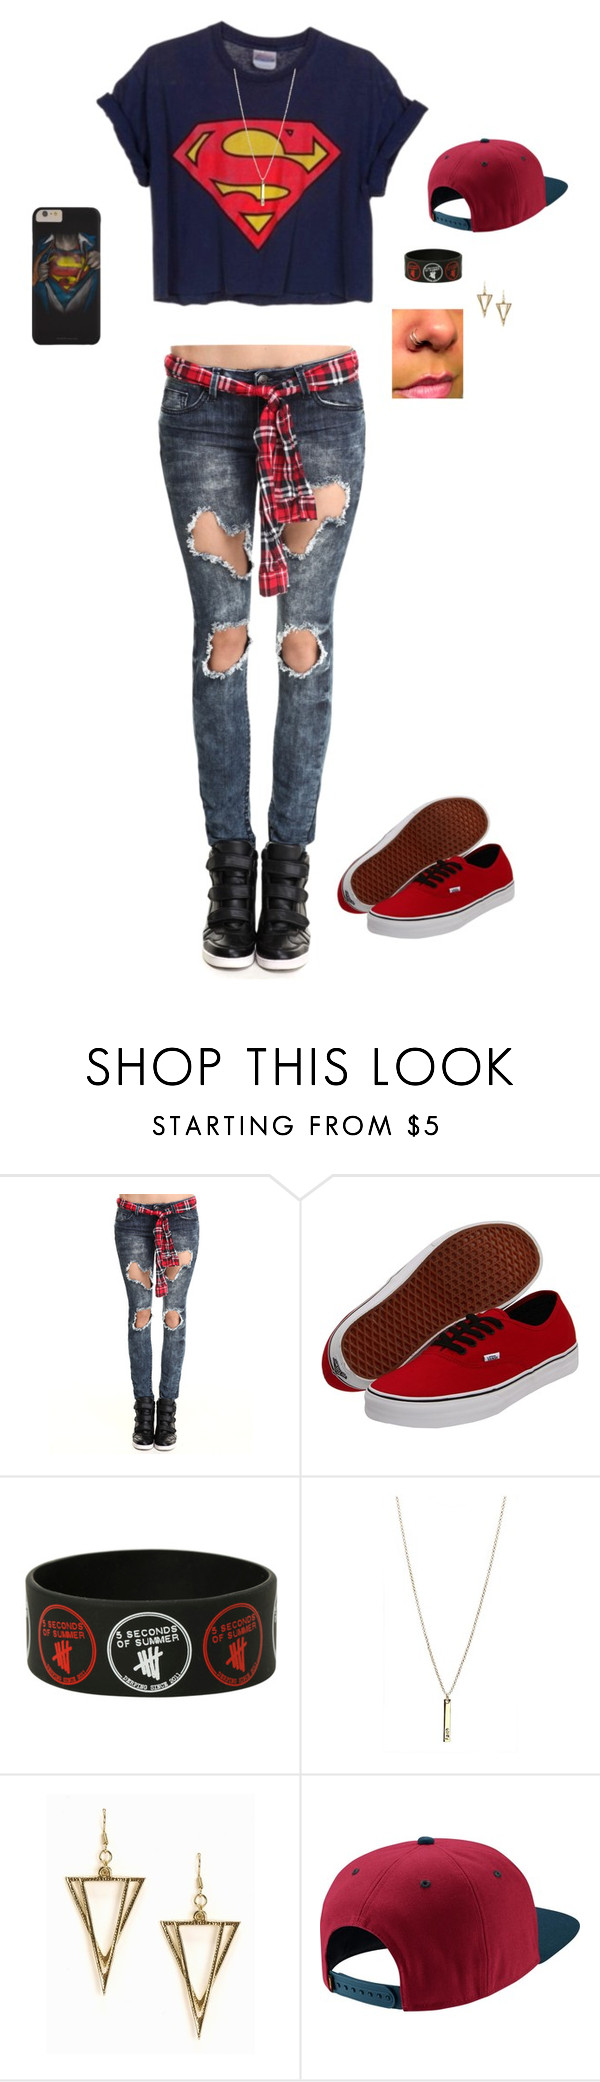 """""""Superman With A Bit Of Swag"""" by hanakdudley ❤ liked on Polyvore featuring Almost Famous, Vans, NLY Accessories and NIKE"""